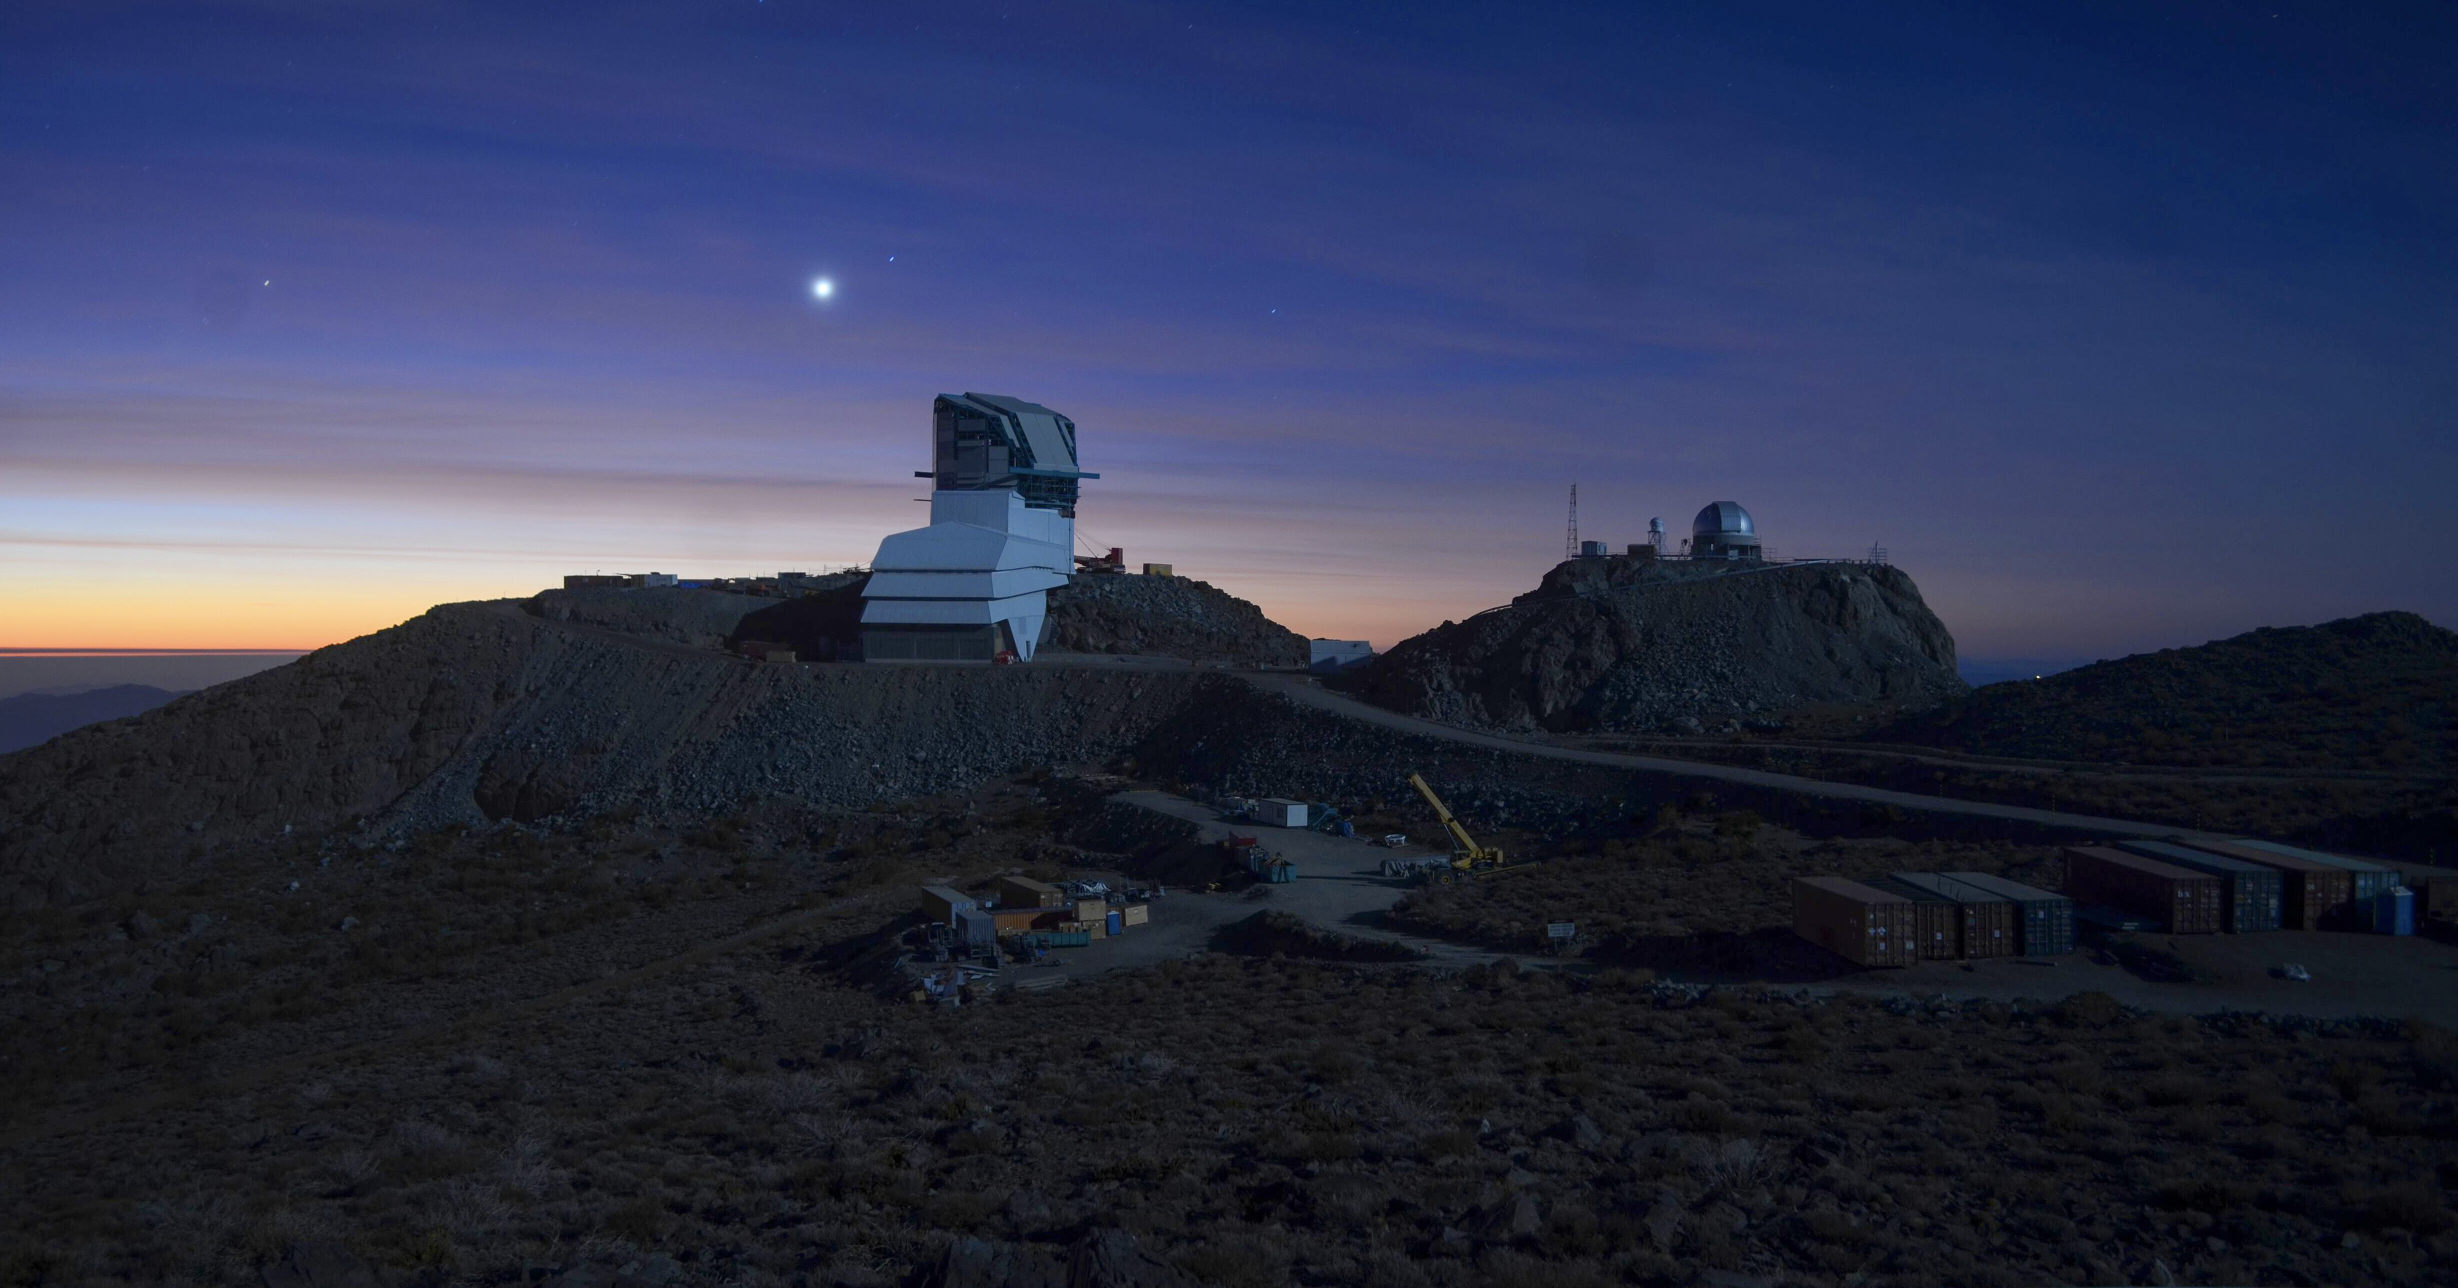 The world's largest digital camera could unlock mysteries of the universe